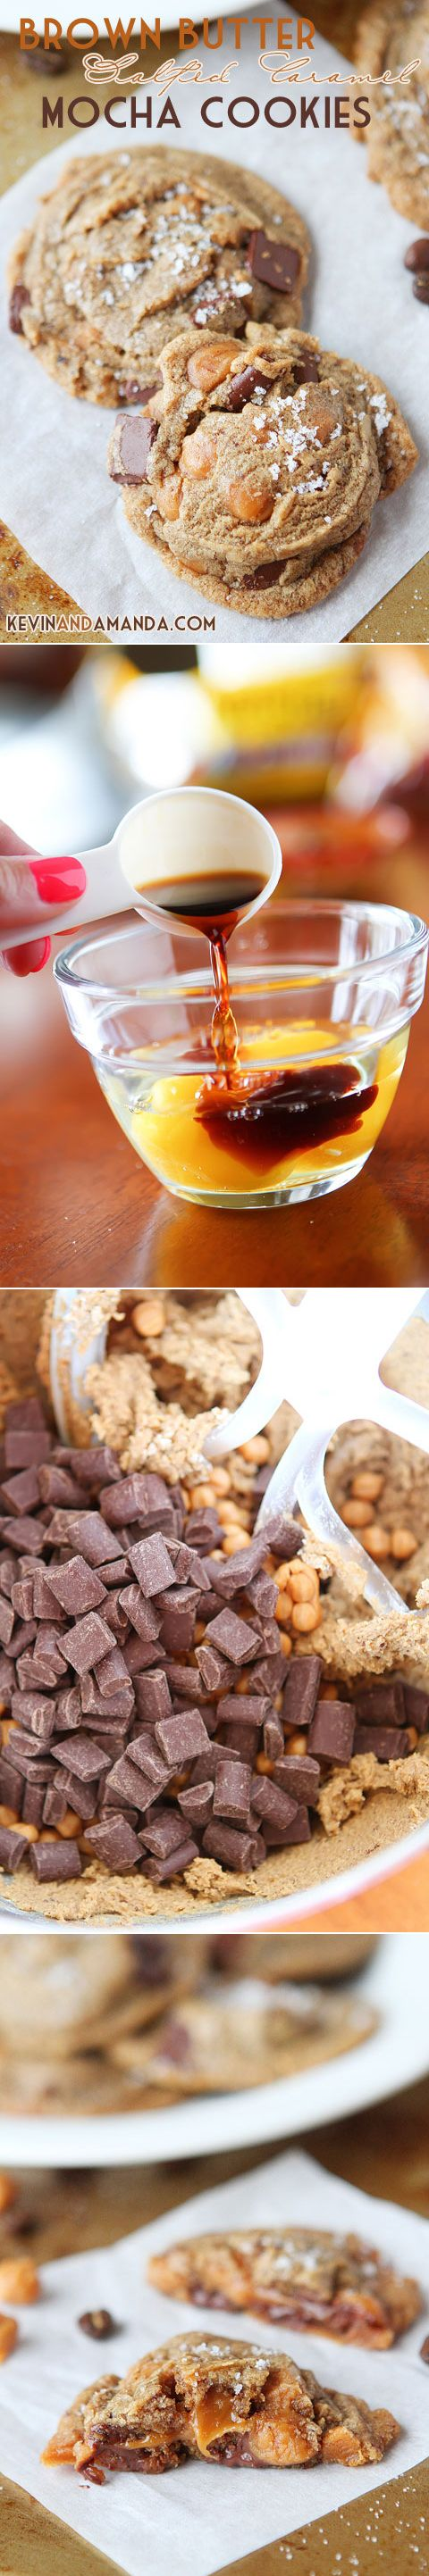 Brown Butter Salted Caramel Mocha Cookies | Recipe